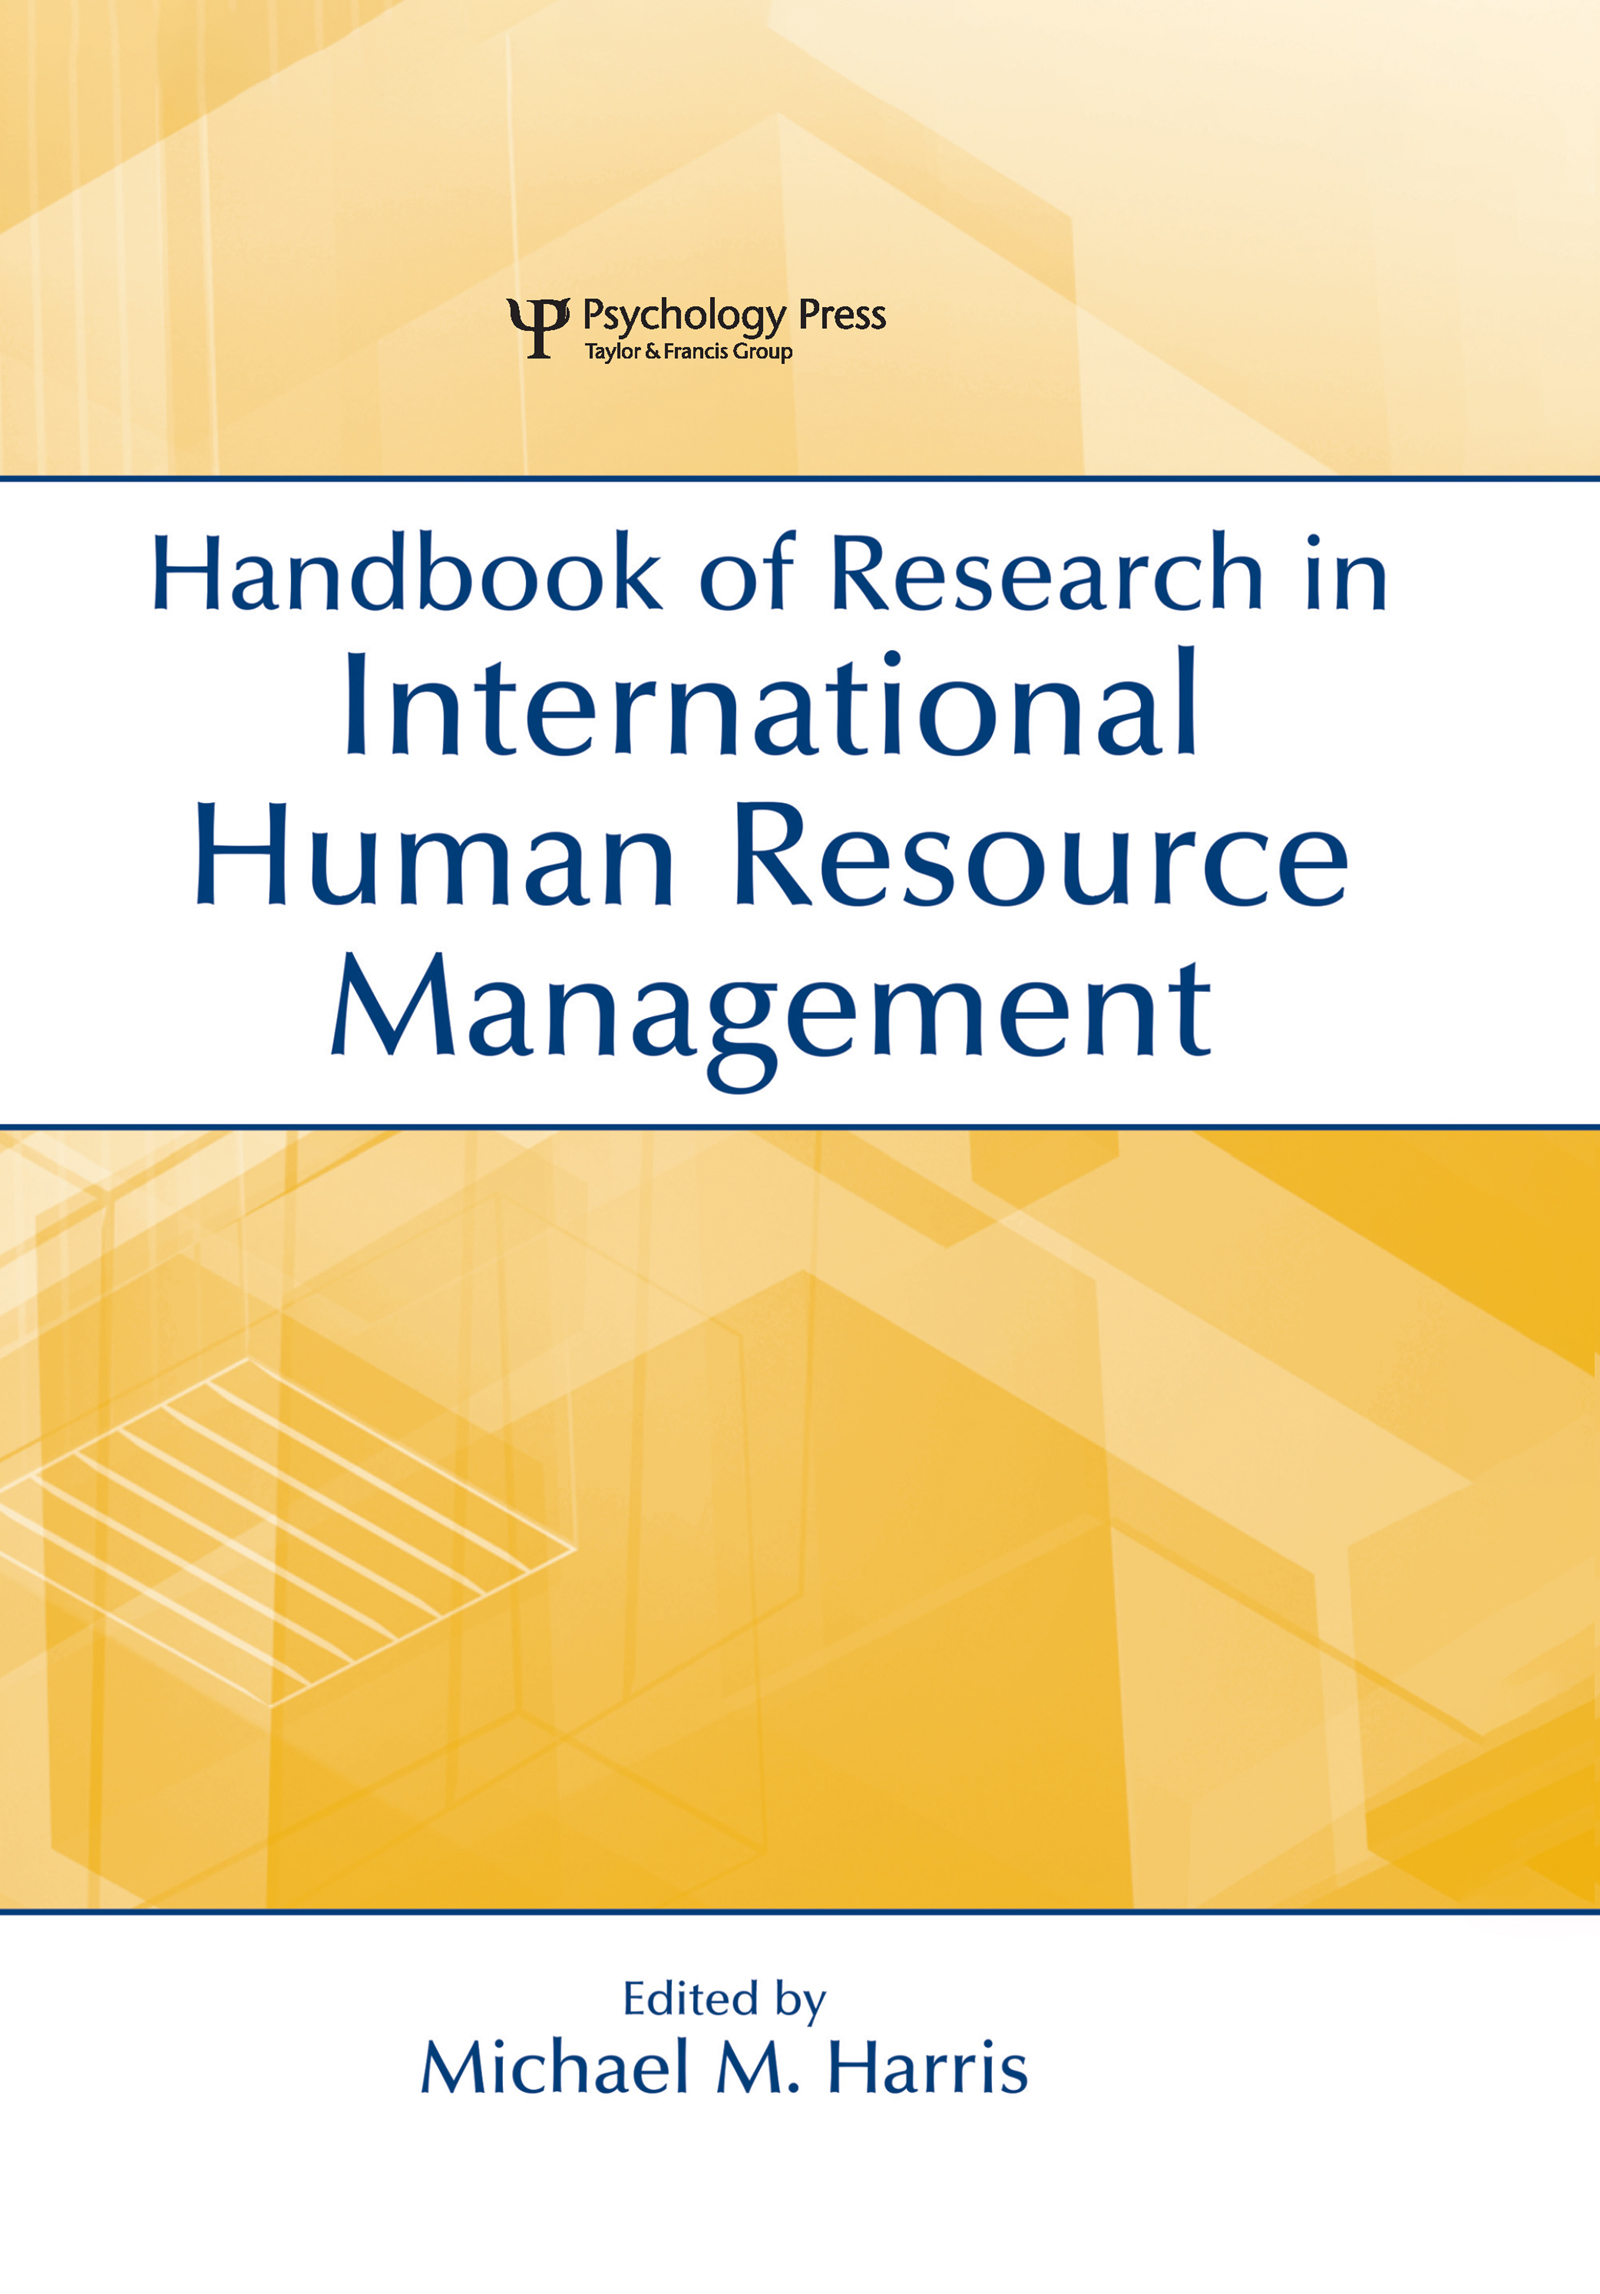 Handbook of Research in International Human Resource Management book cover